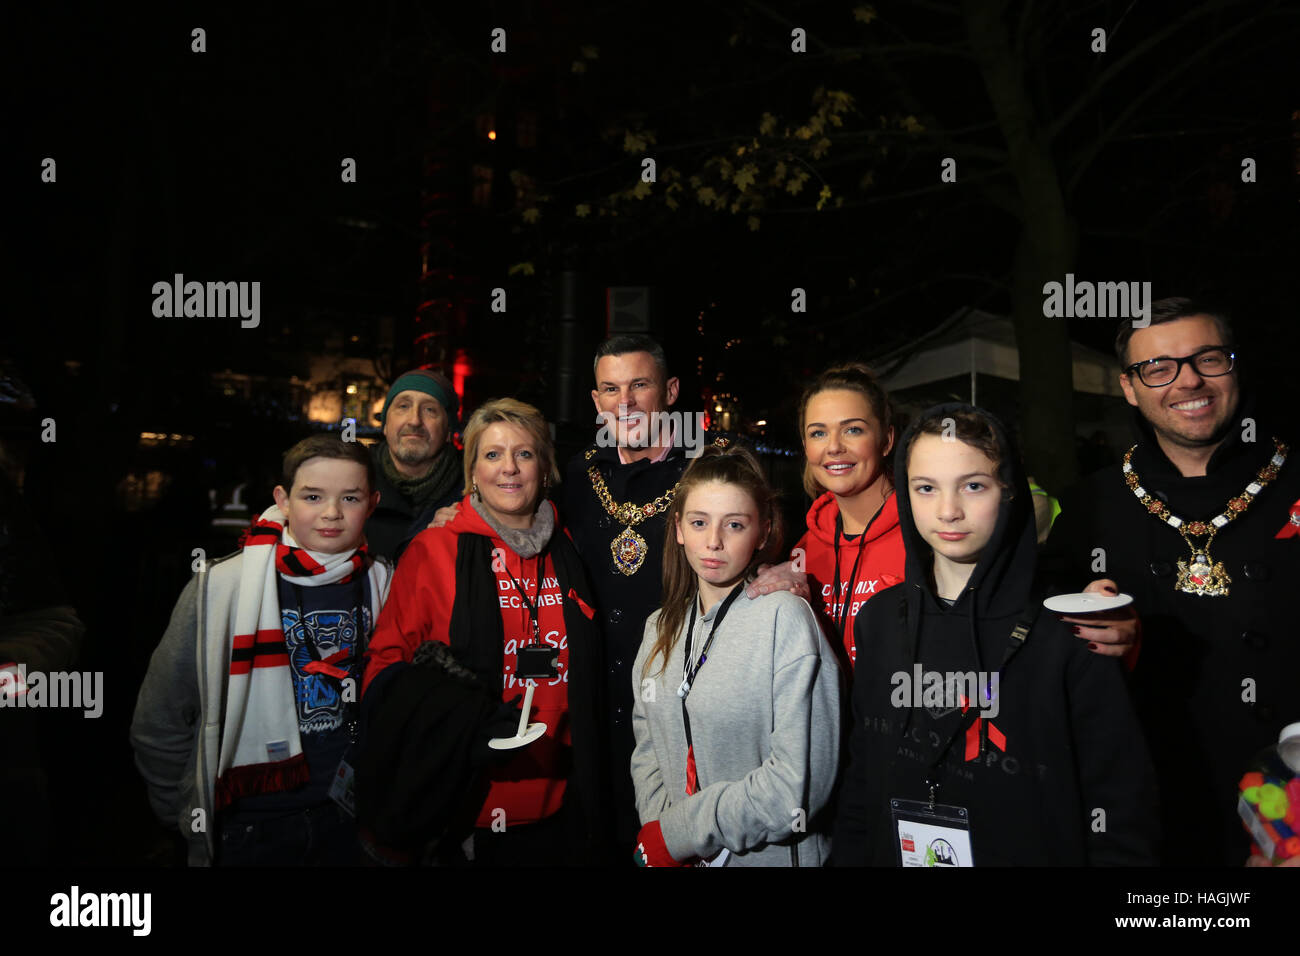 Lord Mayor Councilor Carl Austin-Behan and attendees at the vigil in Sackville Gardens,Gay Village, Manchester, - Stock Image